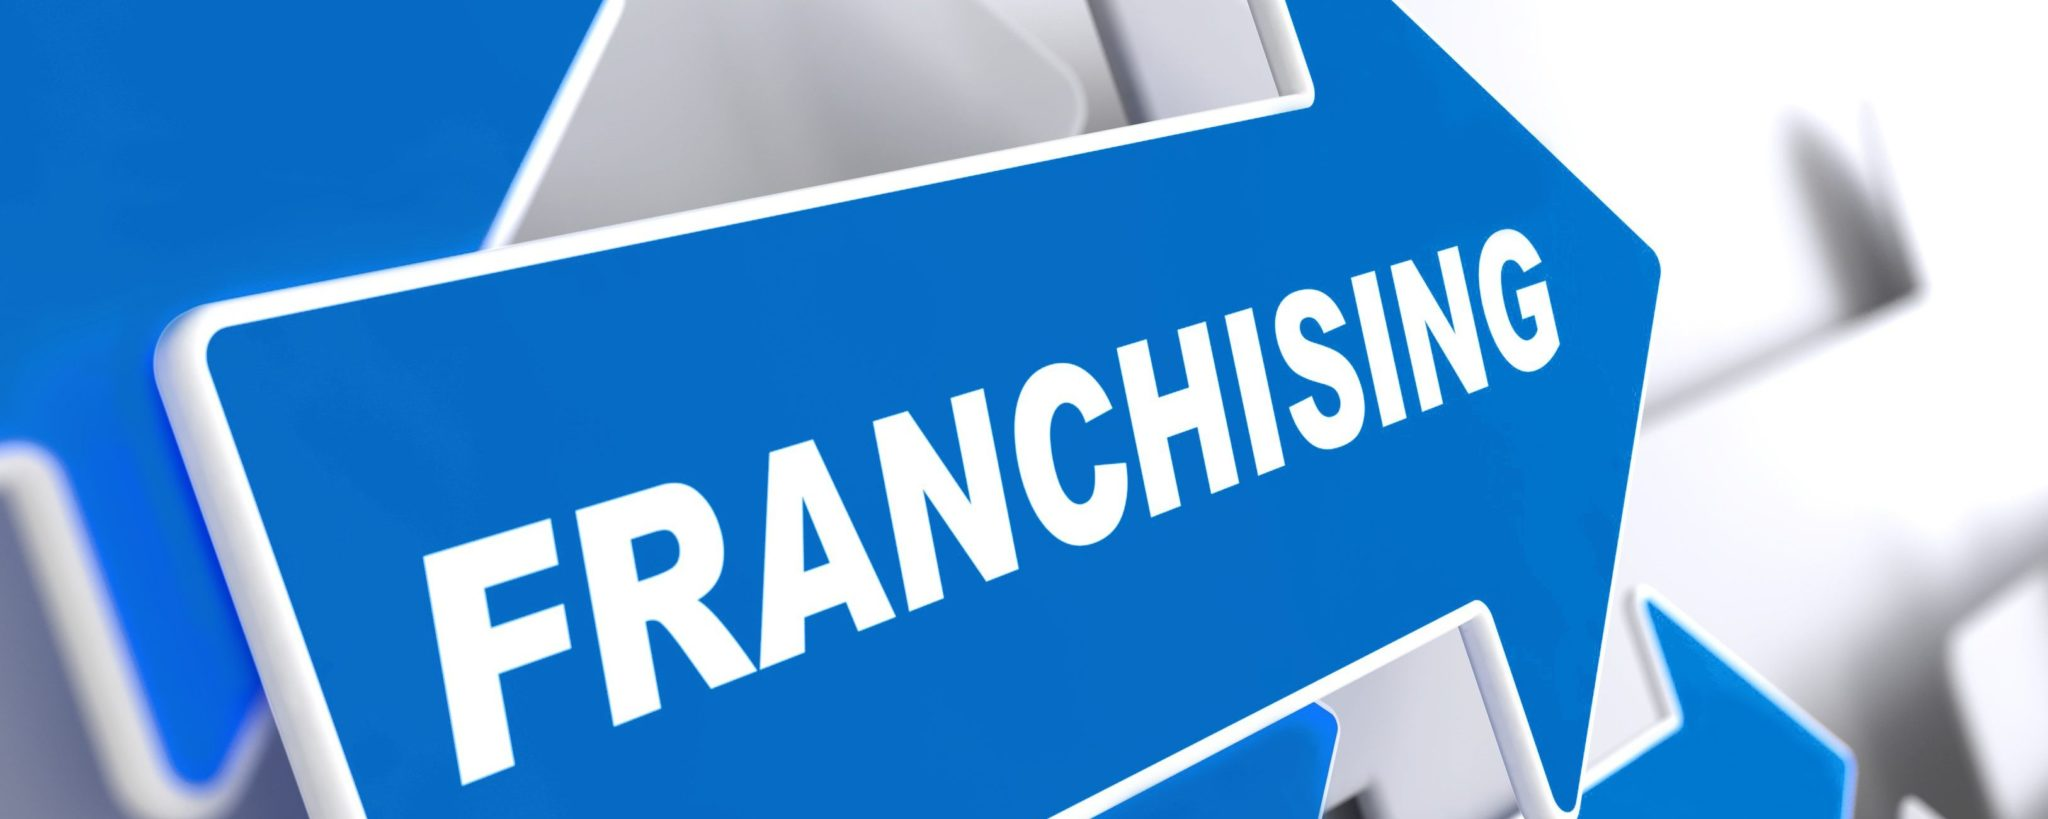 Draft Franchise Industry Code of Conduct